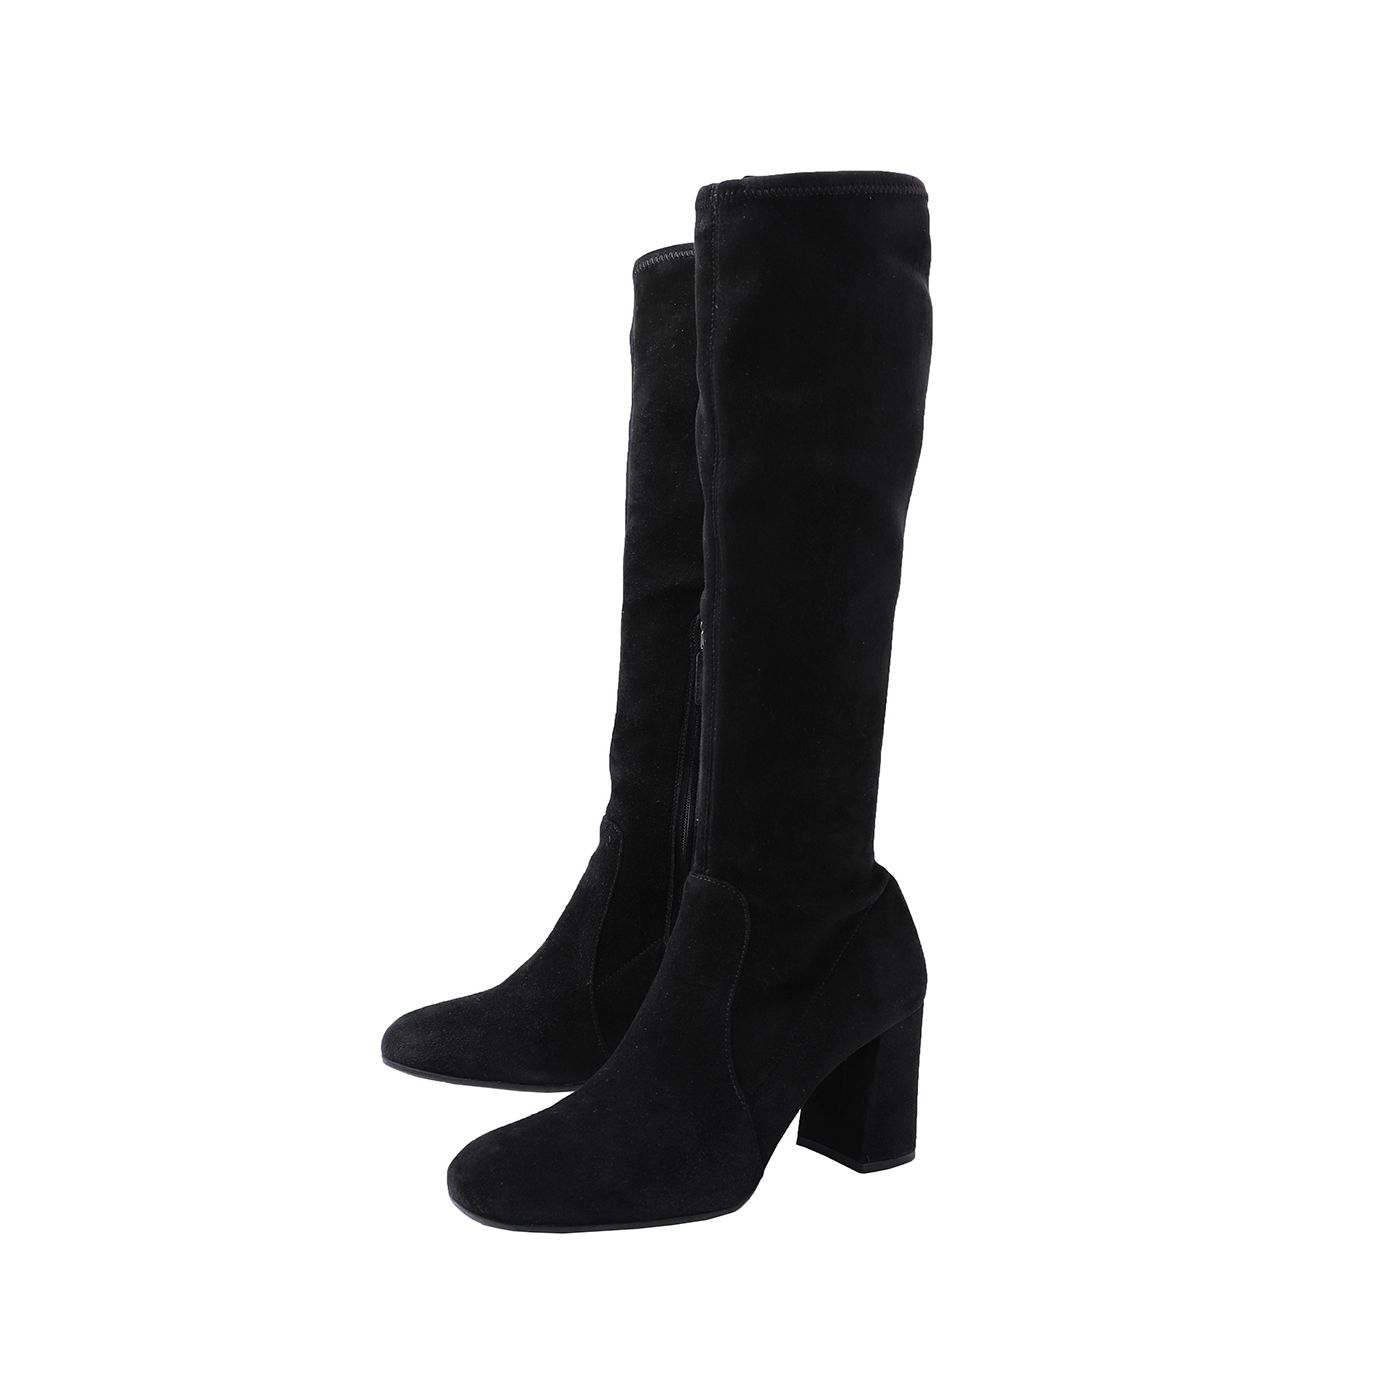 Prada Black Stretch Knee High Boots 37.5